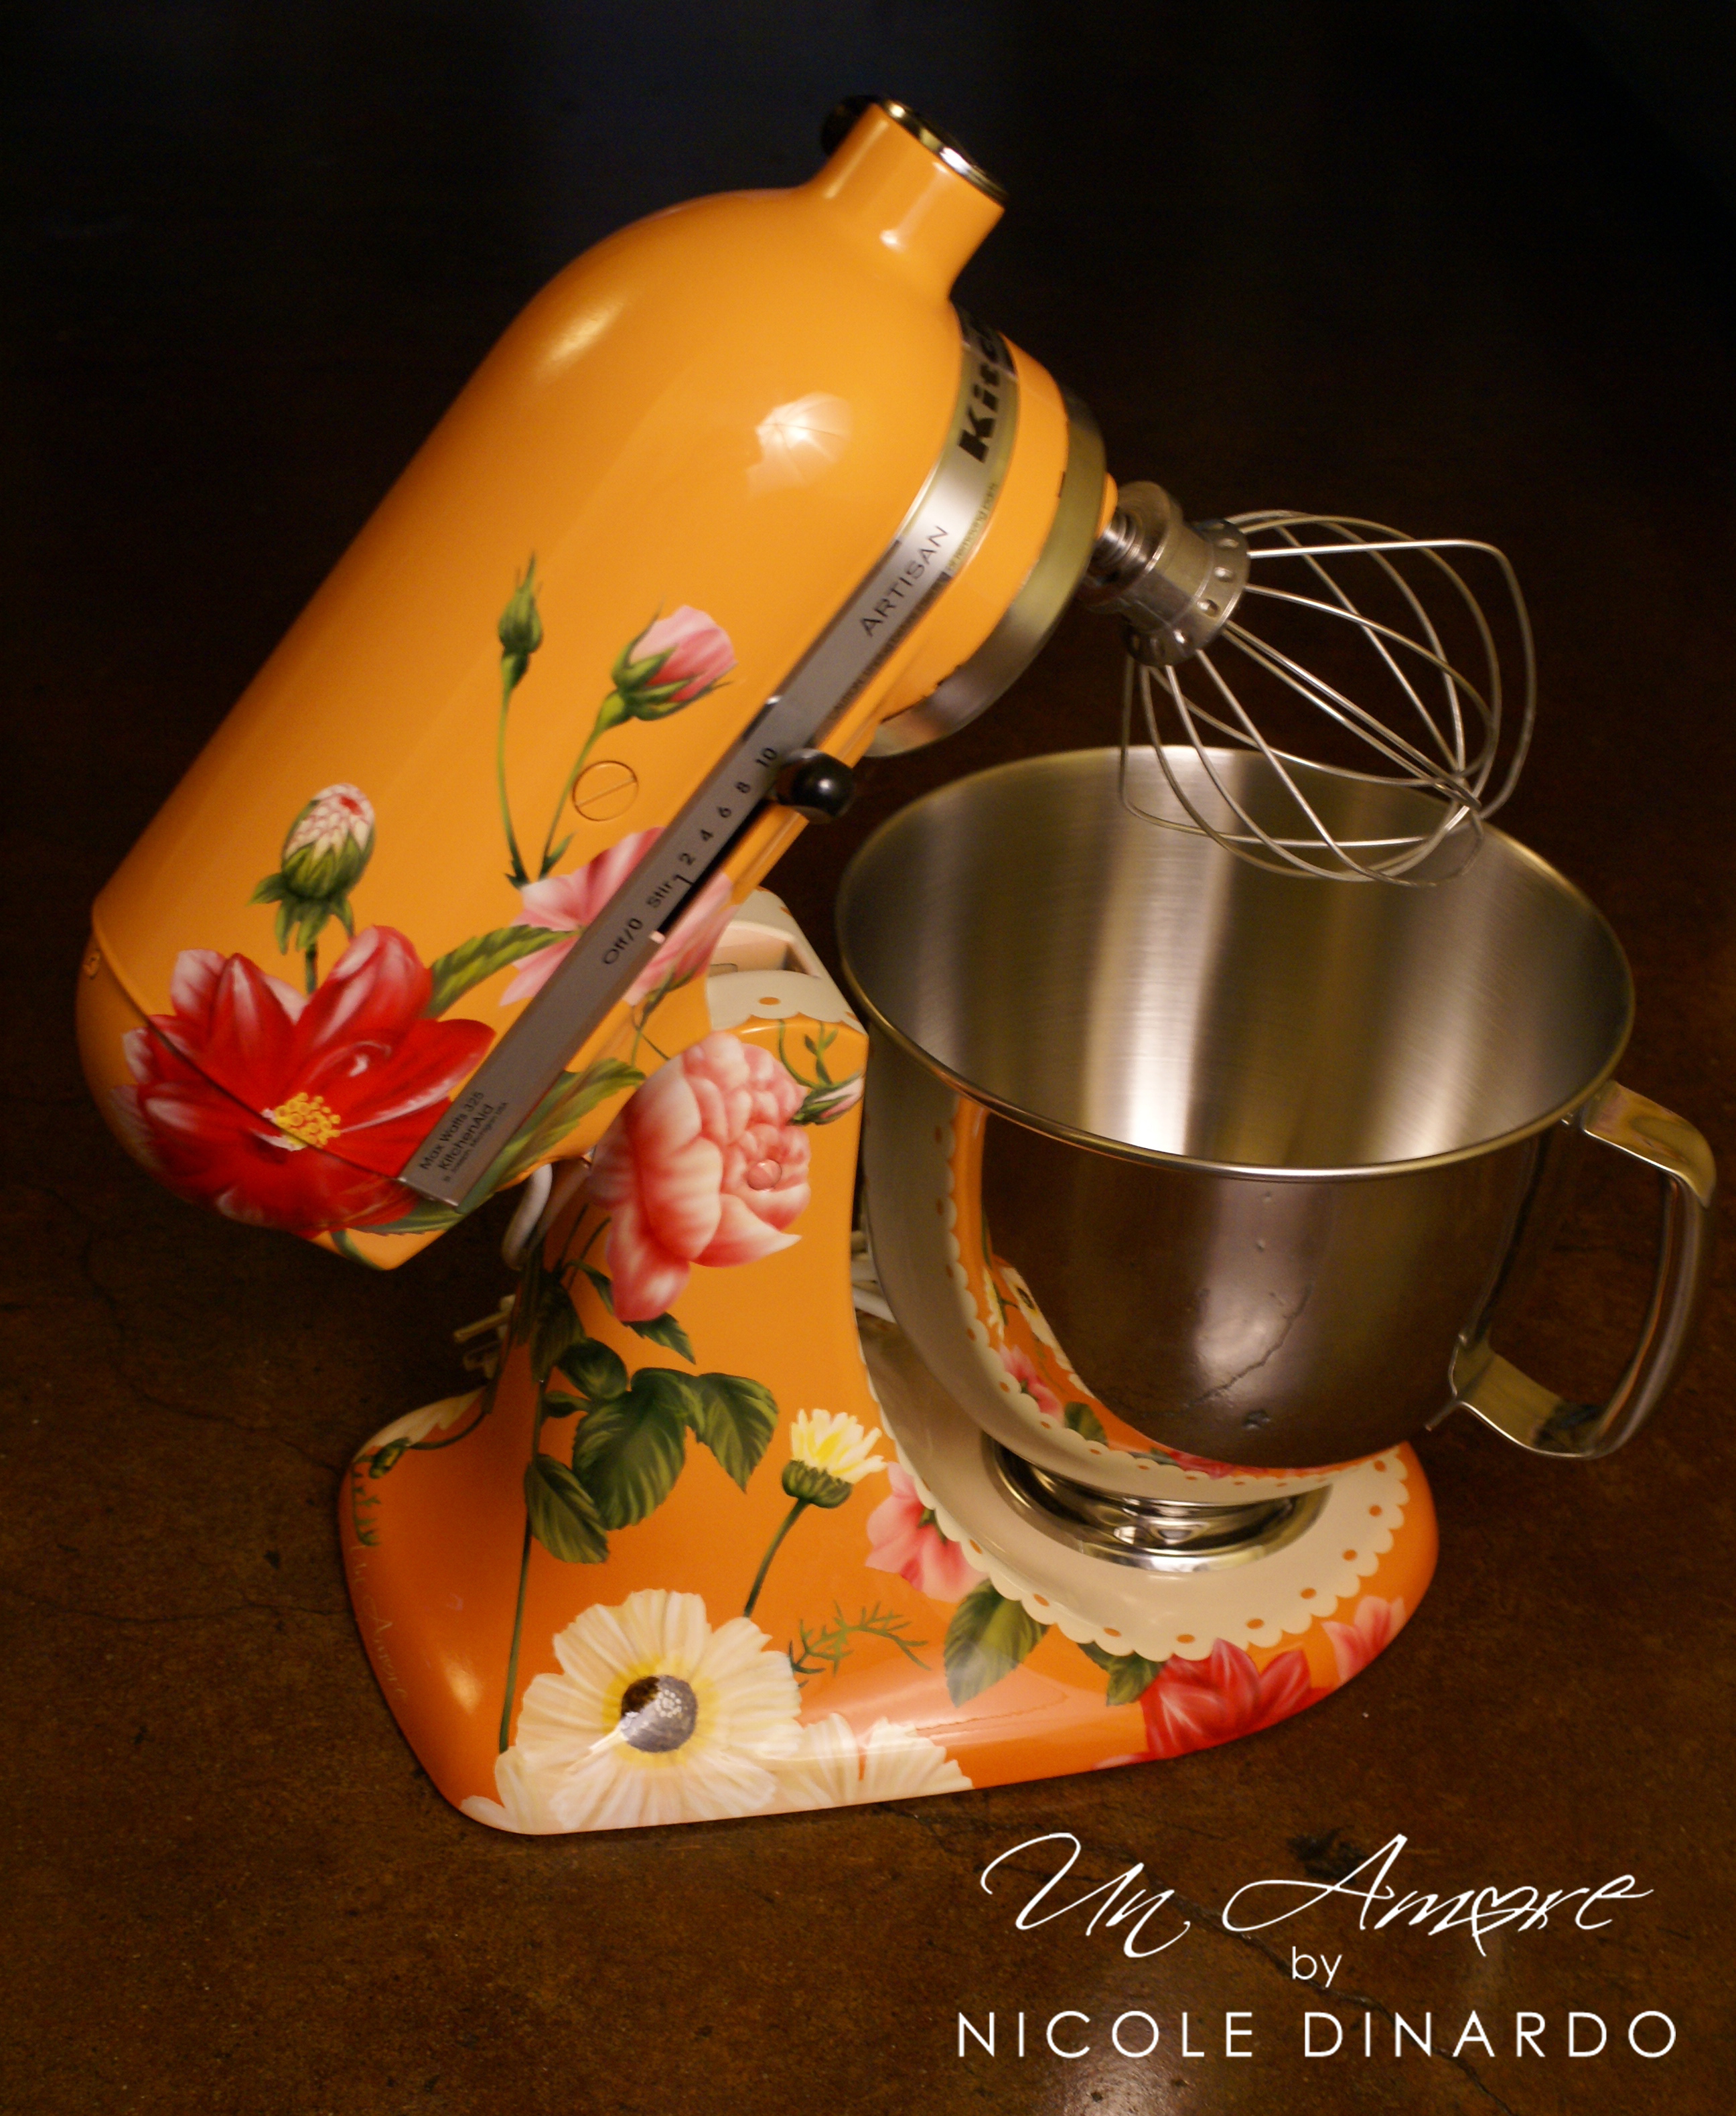 The pioneer woman custom kitchenaid mixer now available for purchase un amore custom designs - Decorated kitchenaid mixer ...